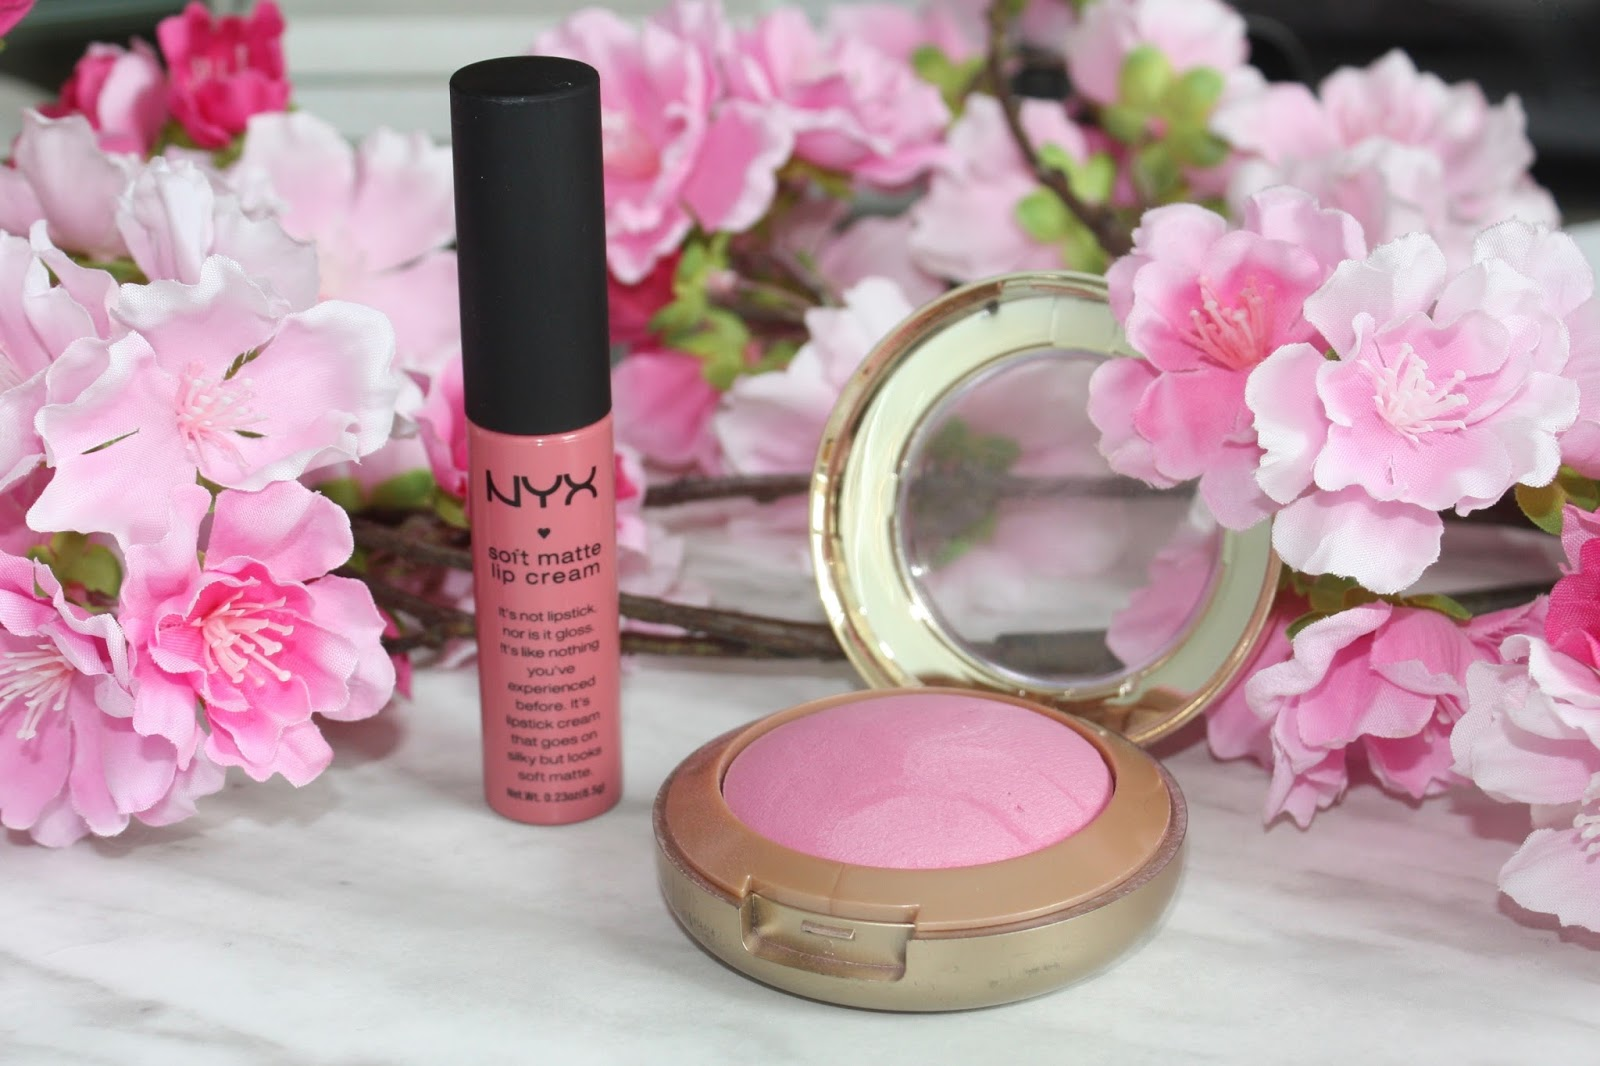 Holy Grail My Favorite Drugstore Beauty Products Jessicaclaranoelle